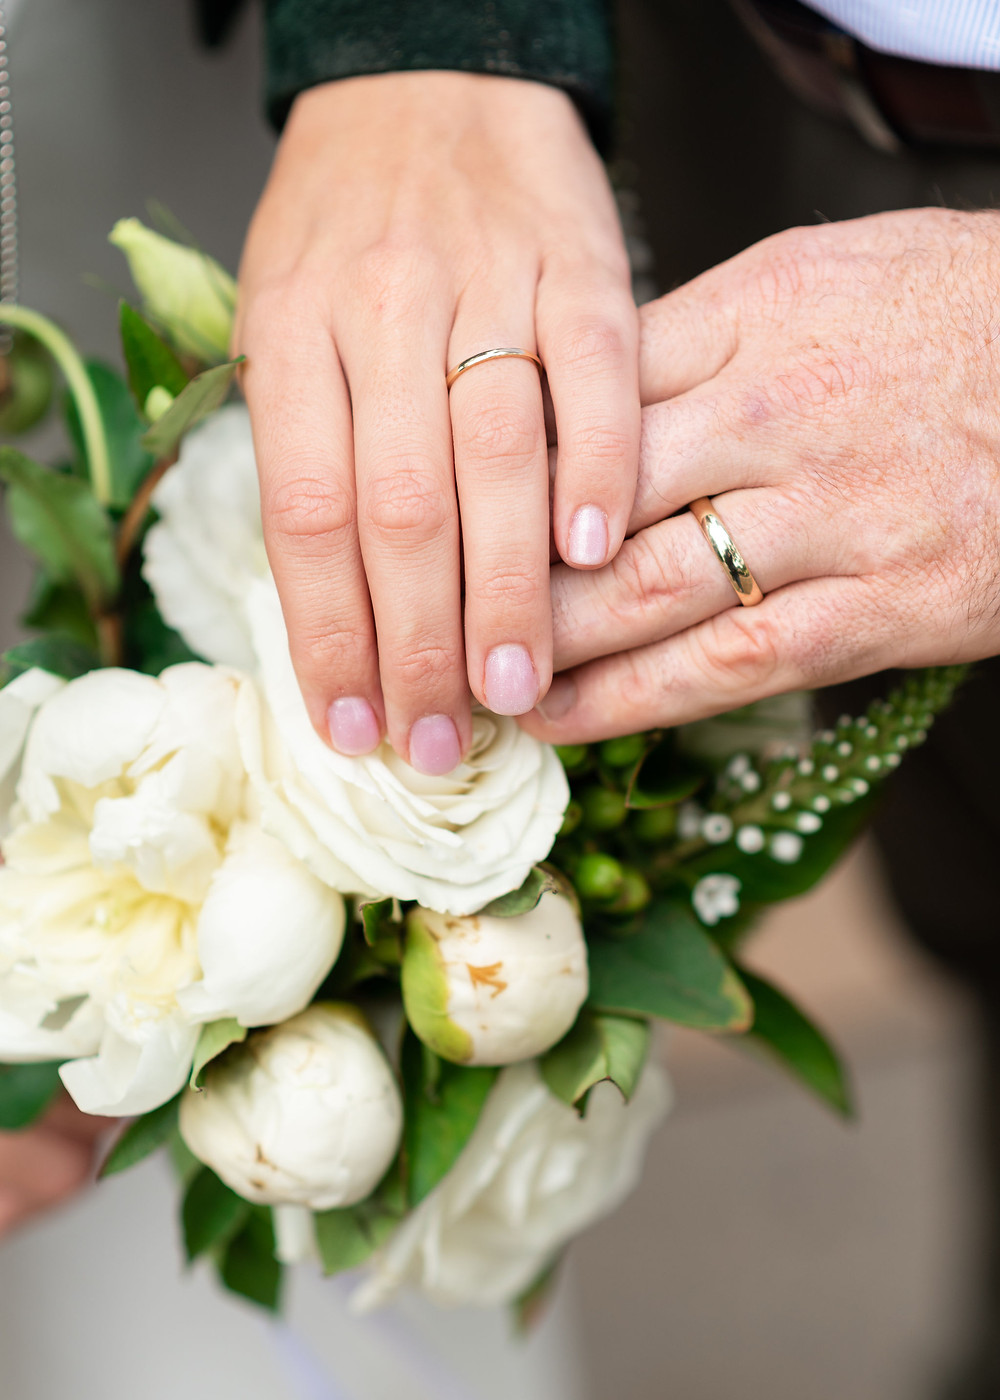 wedding bands on hands by flowers